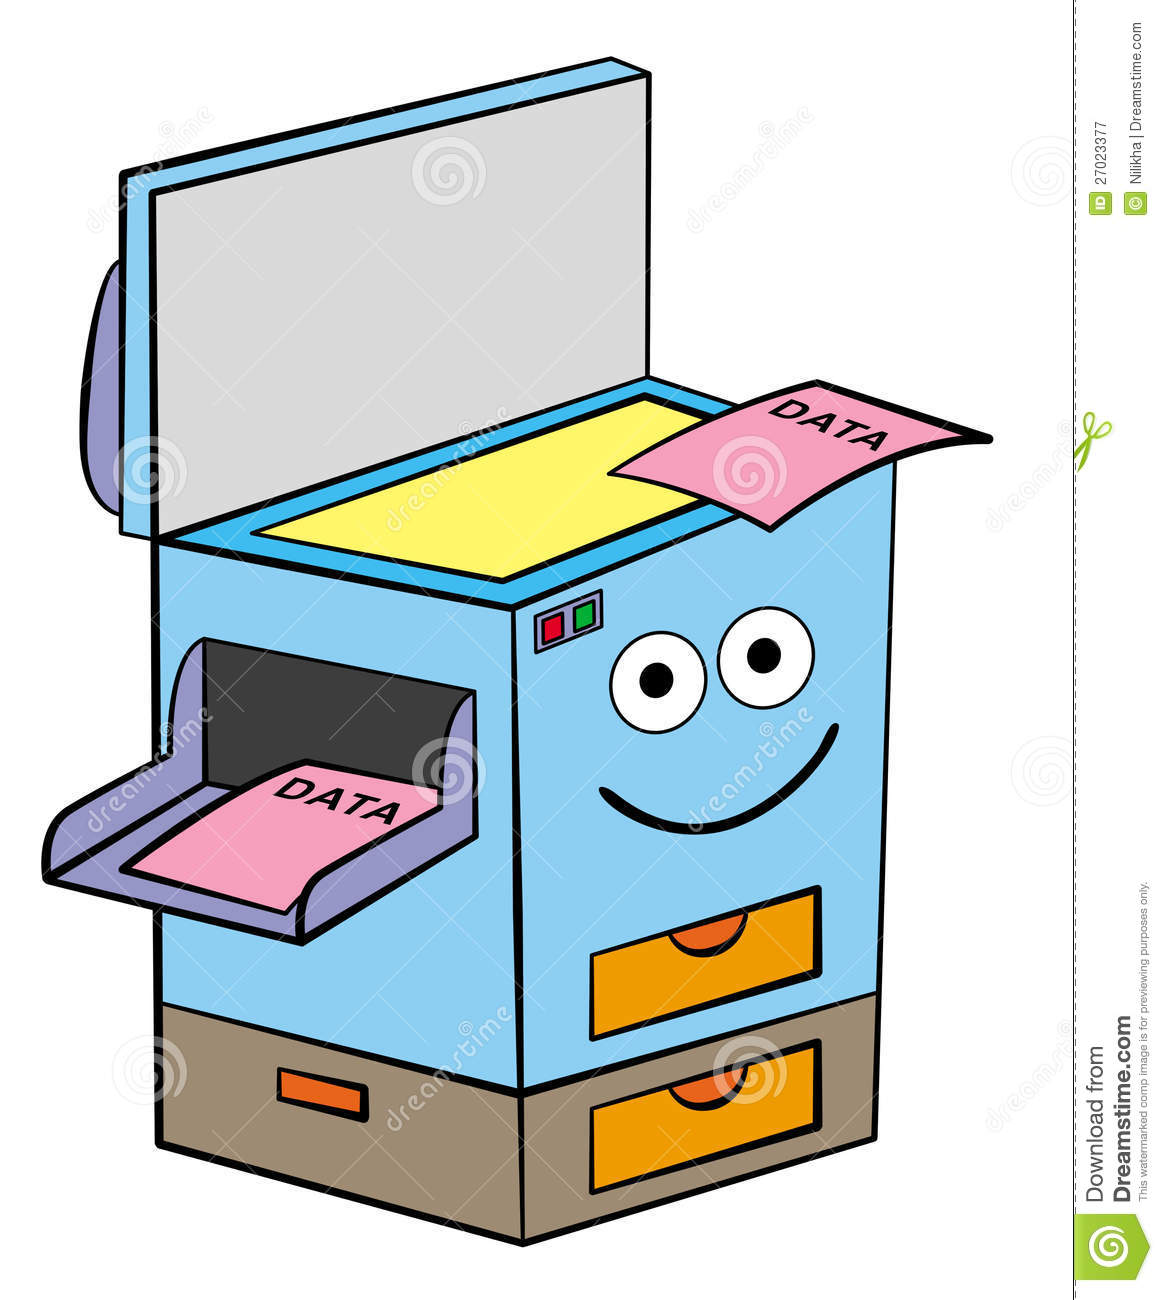 Cartoon Illustration Of A Xerox Machine With A Smiling Face Who Had